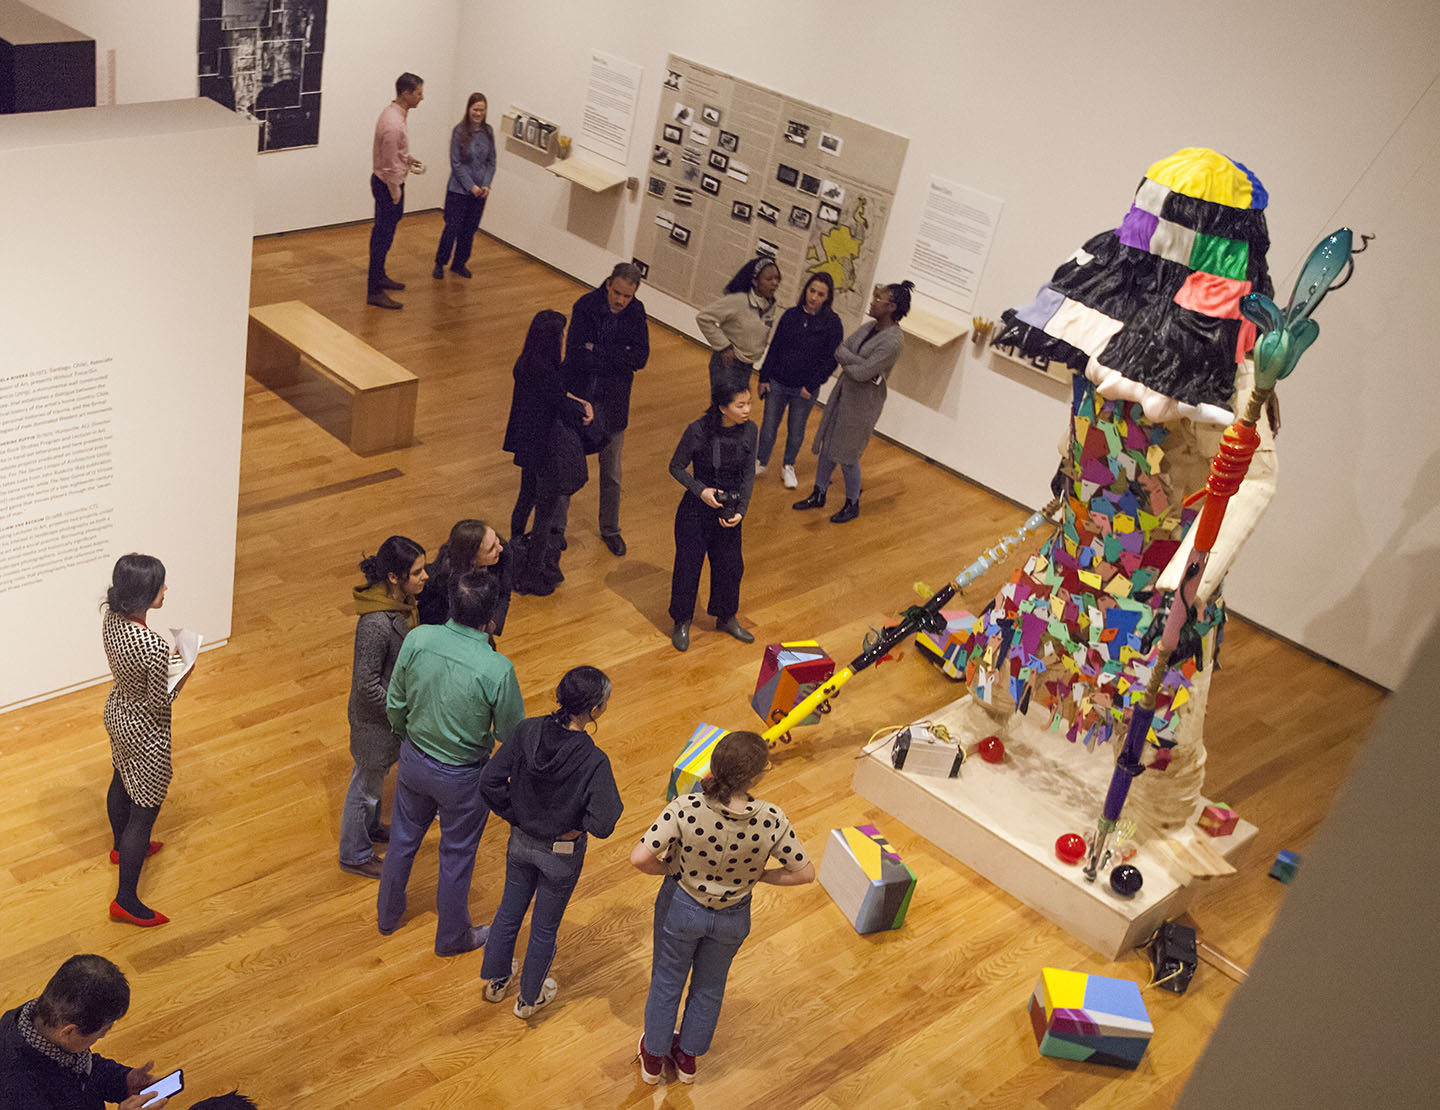 people looking at large figurative sculpture, gallery photographed from above